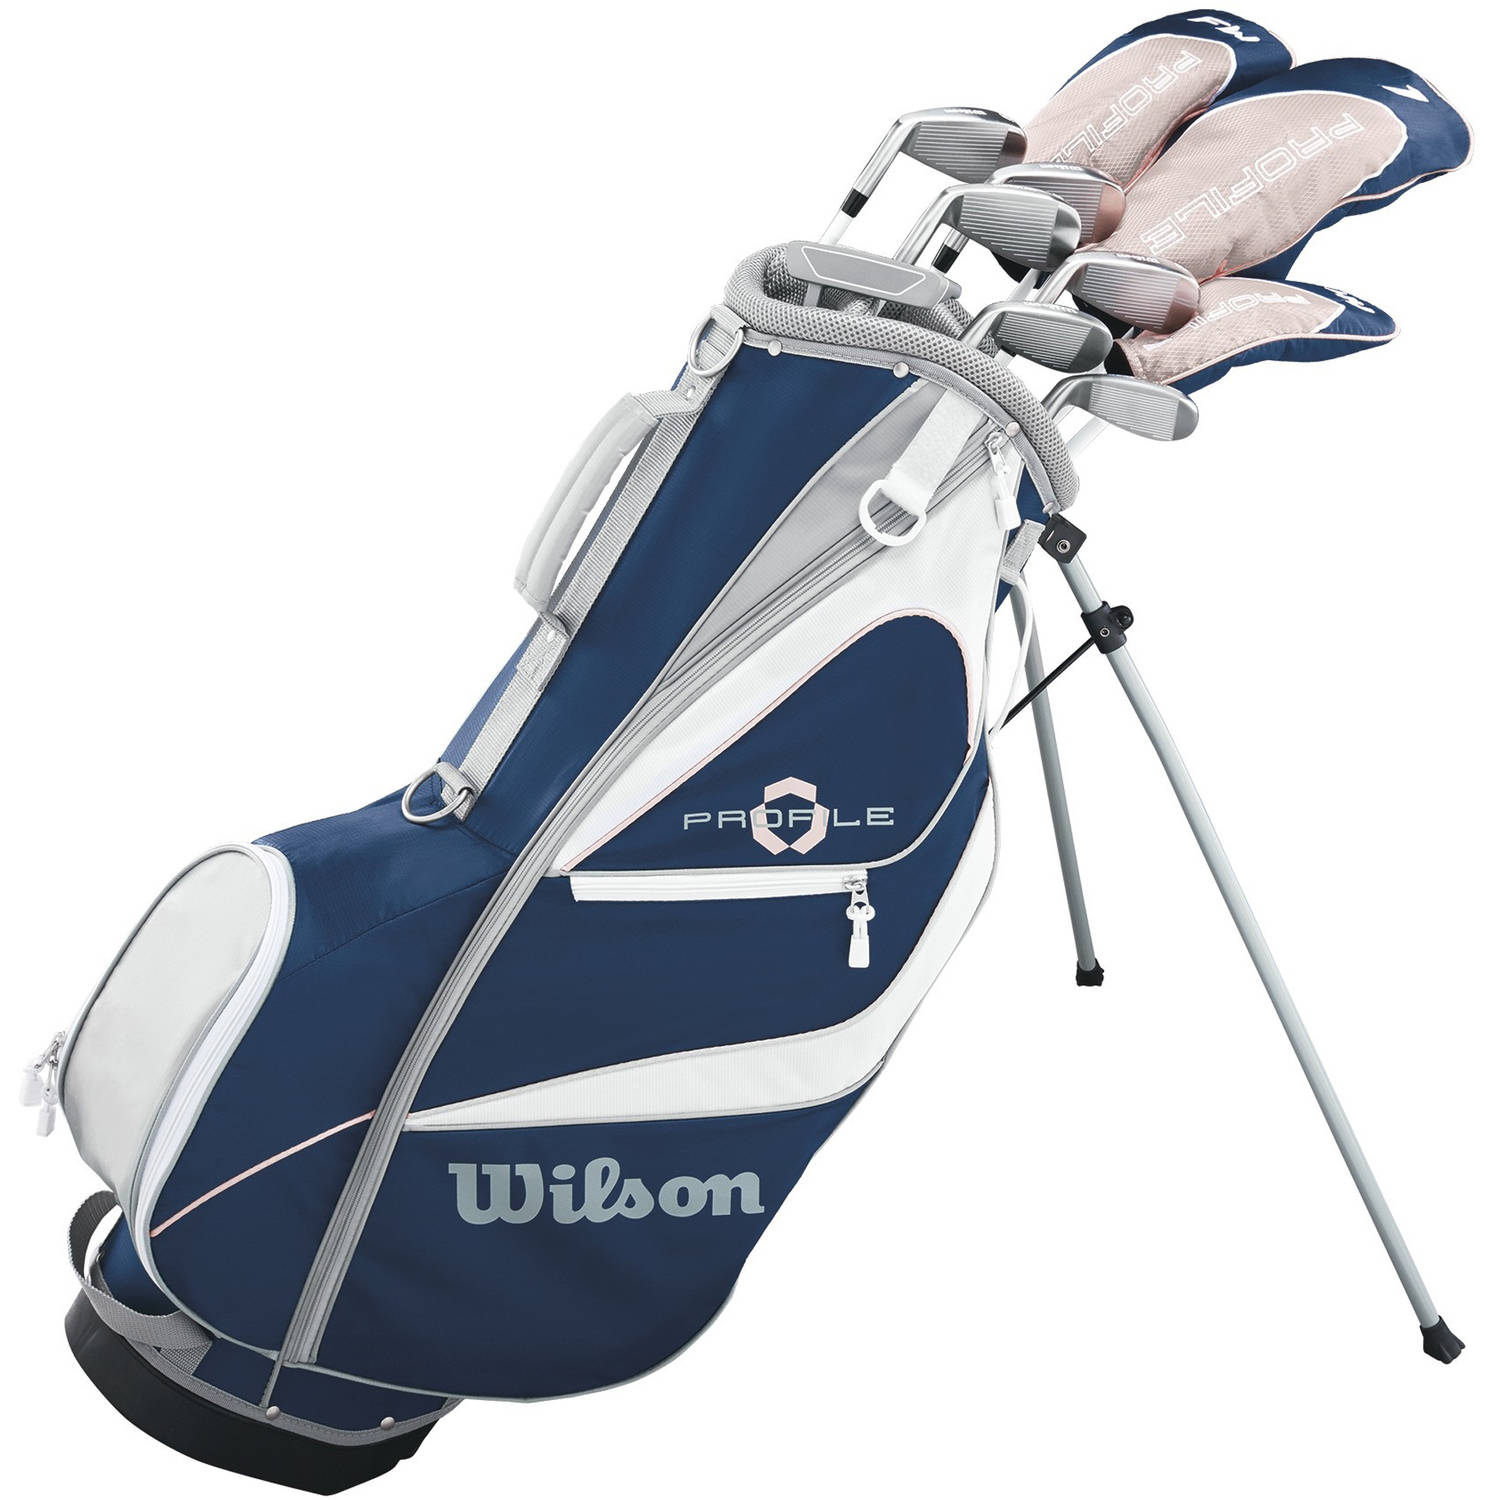 Wilson Profile XD Womens Package Golf Set, Petite, Right Handed